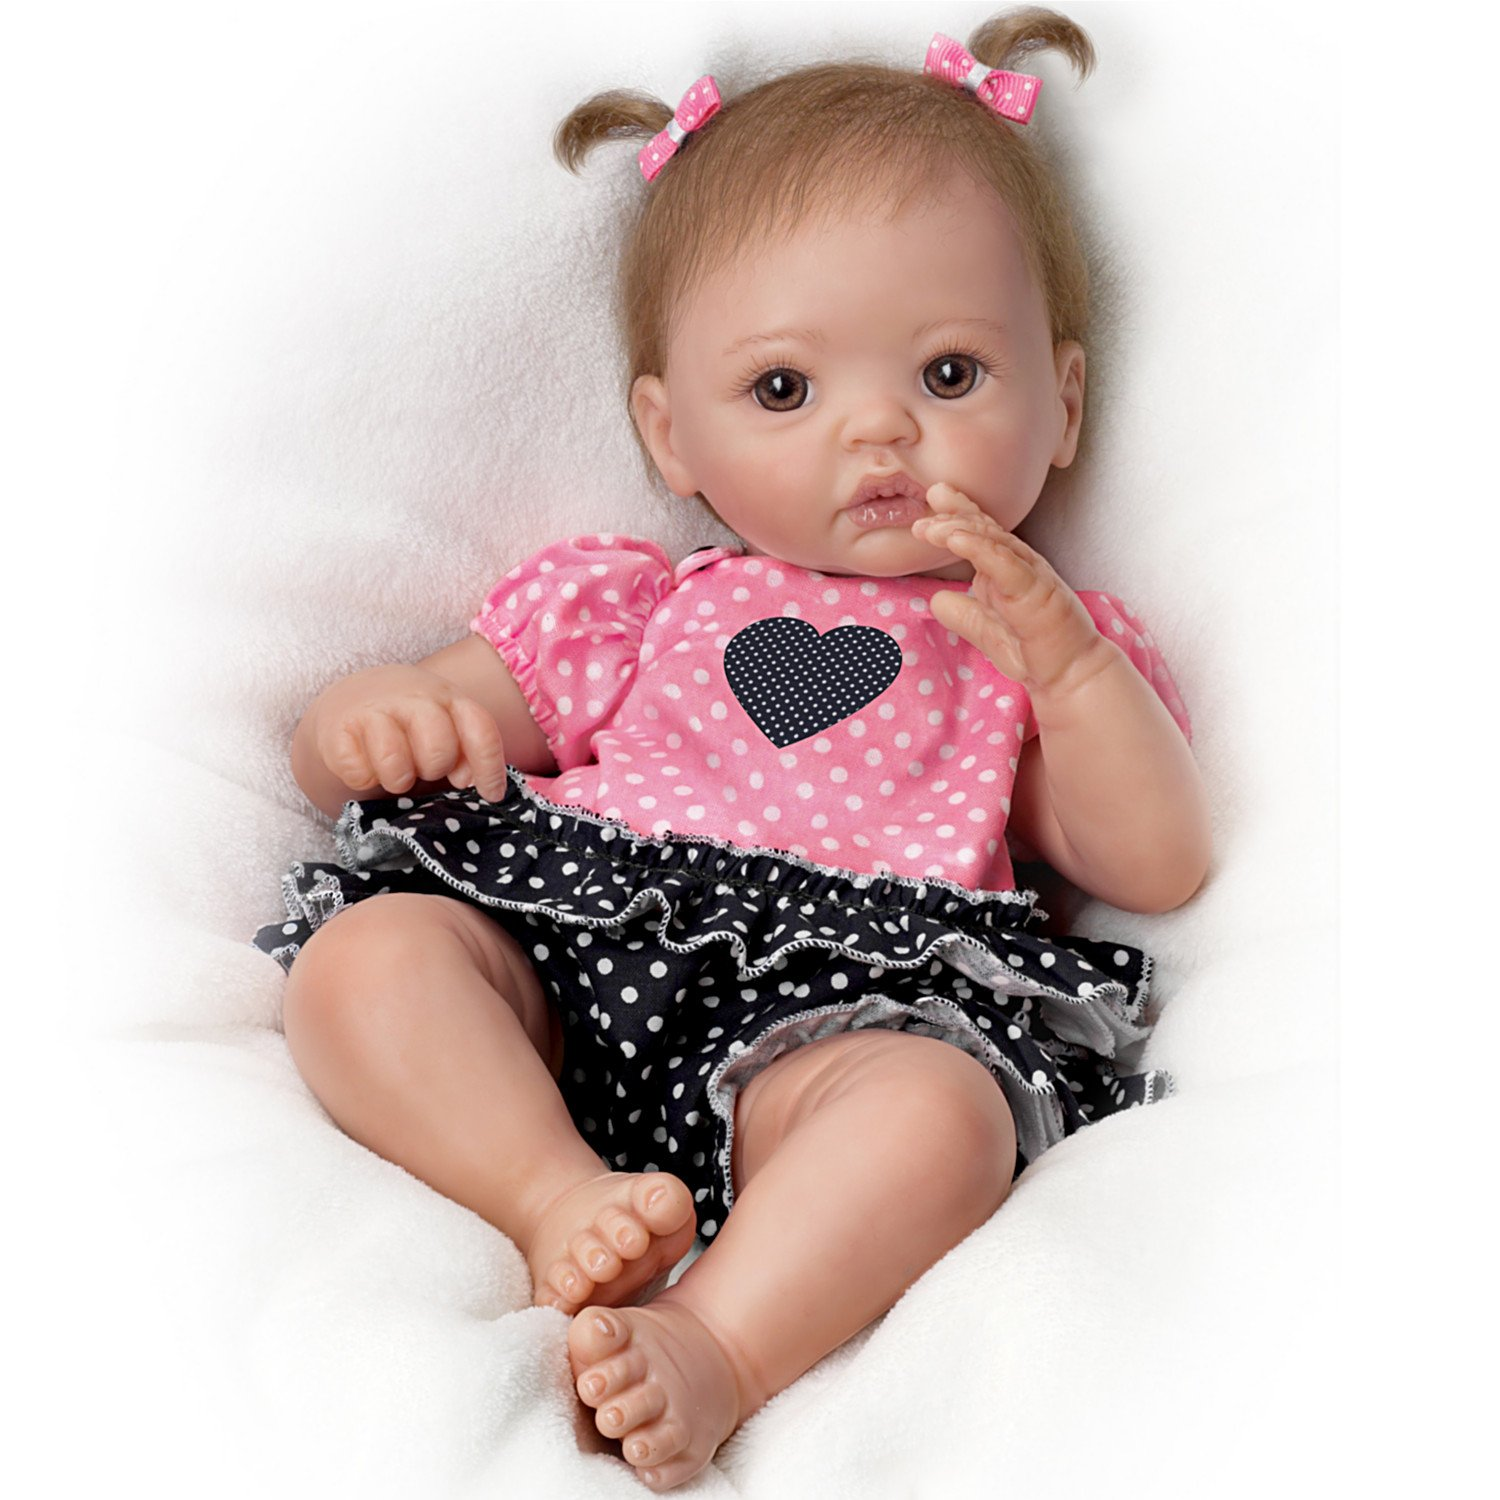 Ashton Drake - Lifelike Baby Doll 'My Little Sweetheart' by Cheryl Hill - Includes Ruffled Romper The Ashton-Drake Galleries 03-02086-001